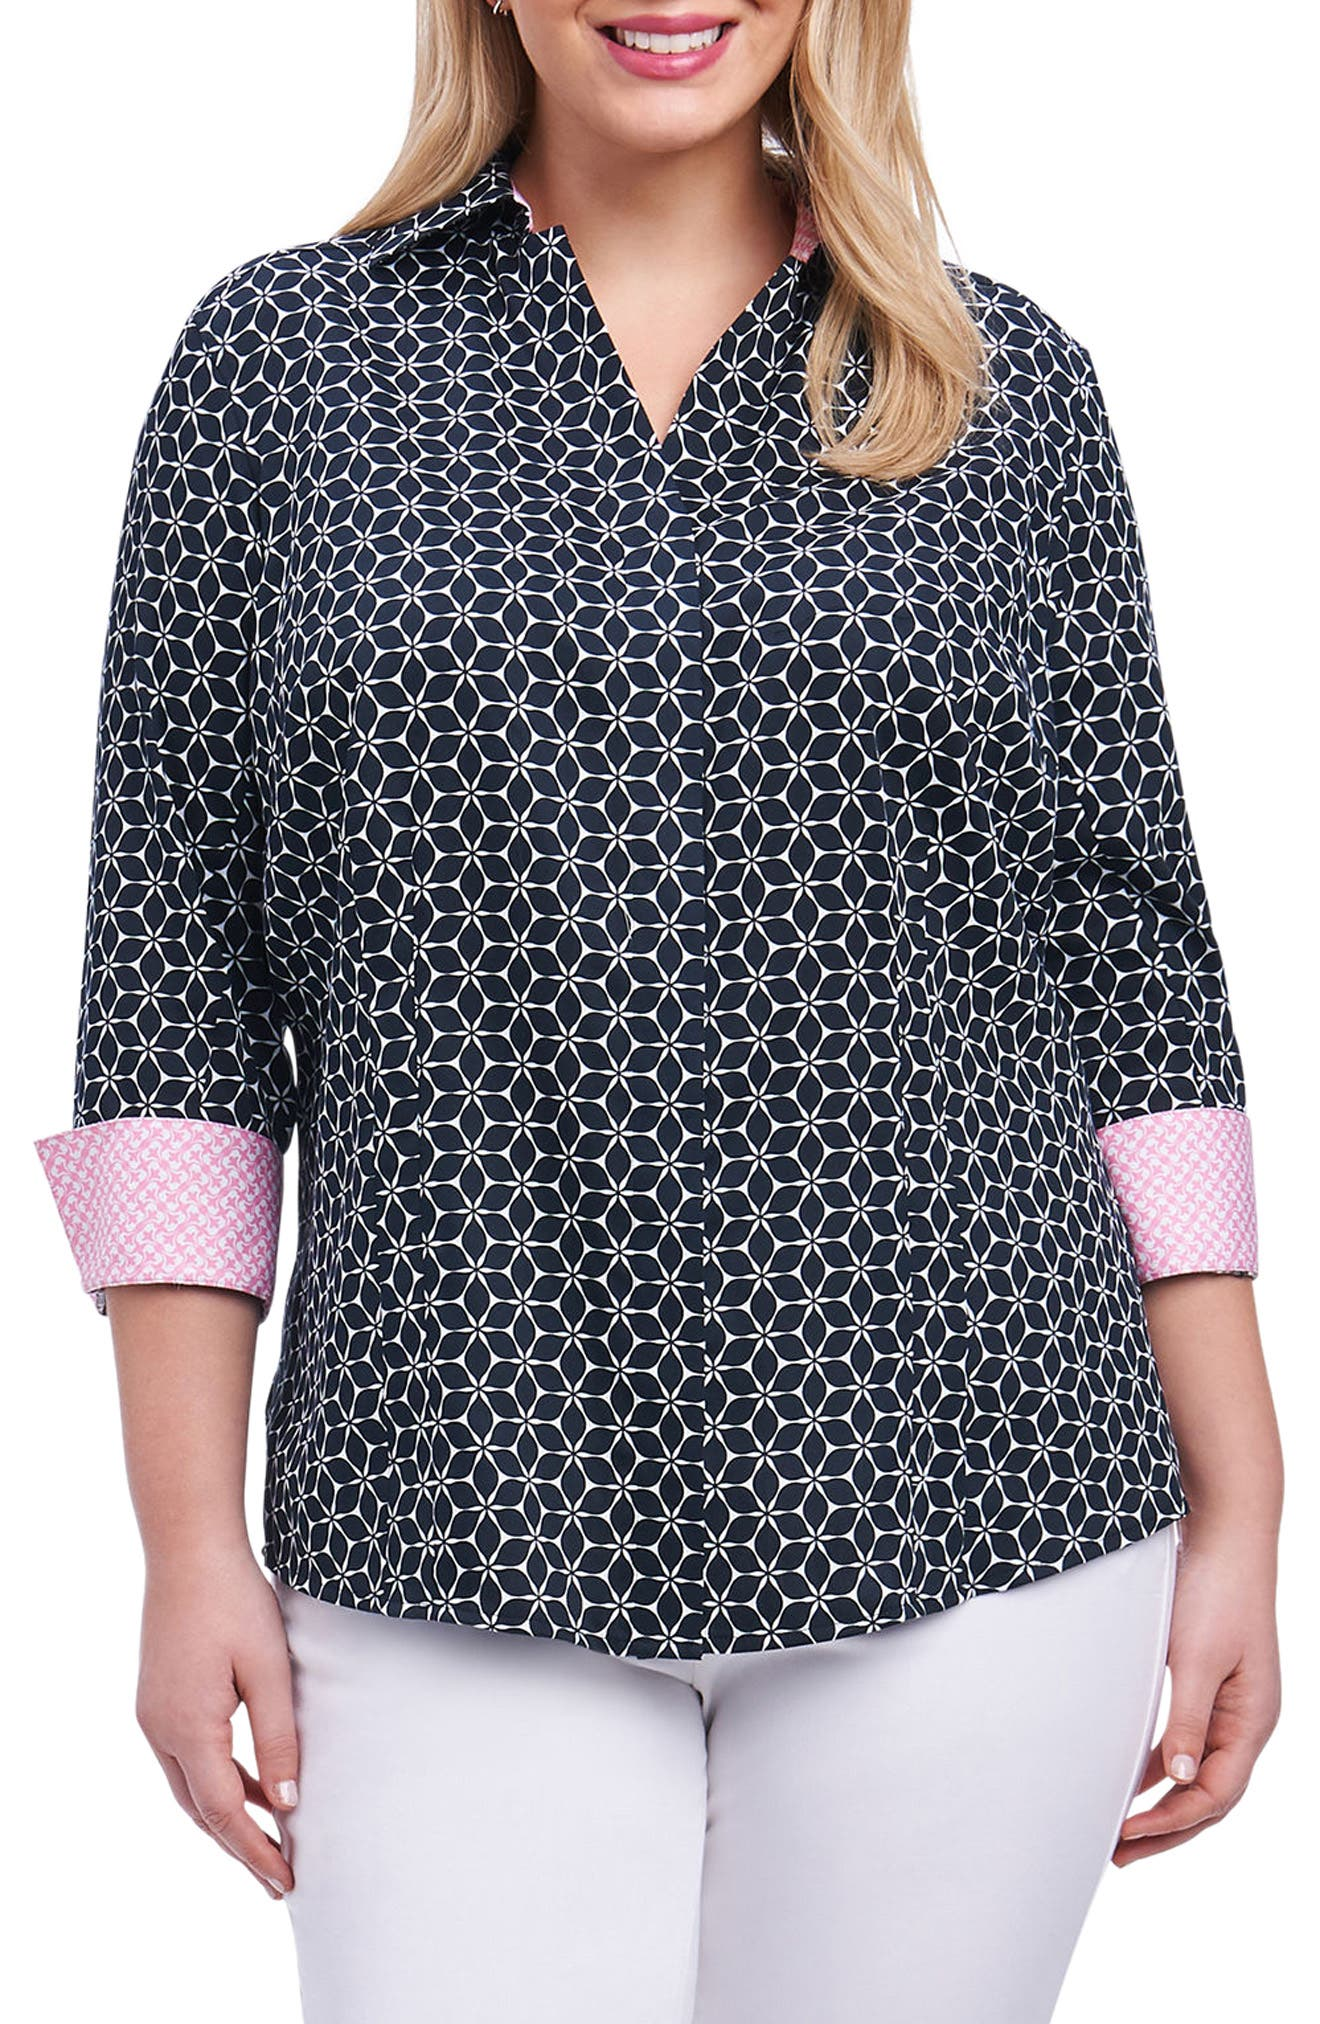 Taylor Optic Floral Print Shirt,                             Main thumbnail 1, color,